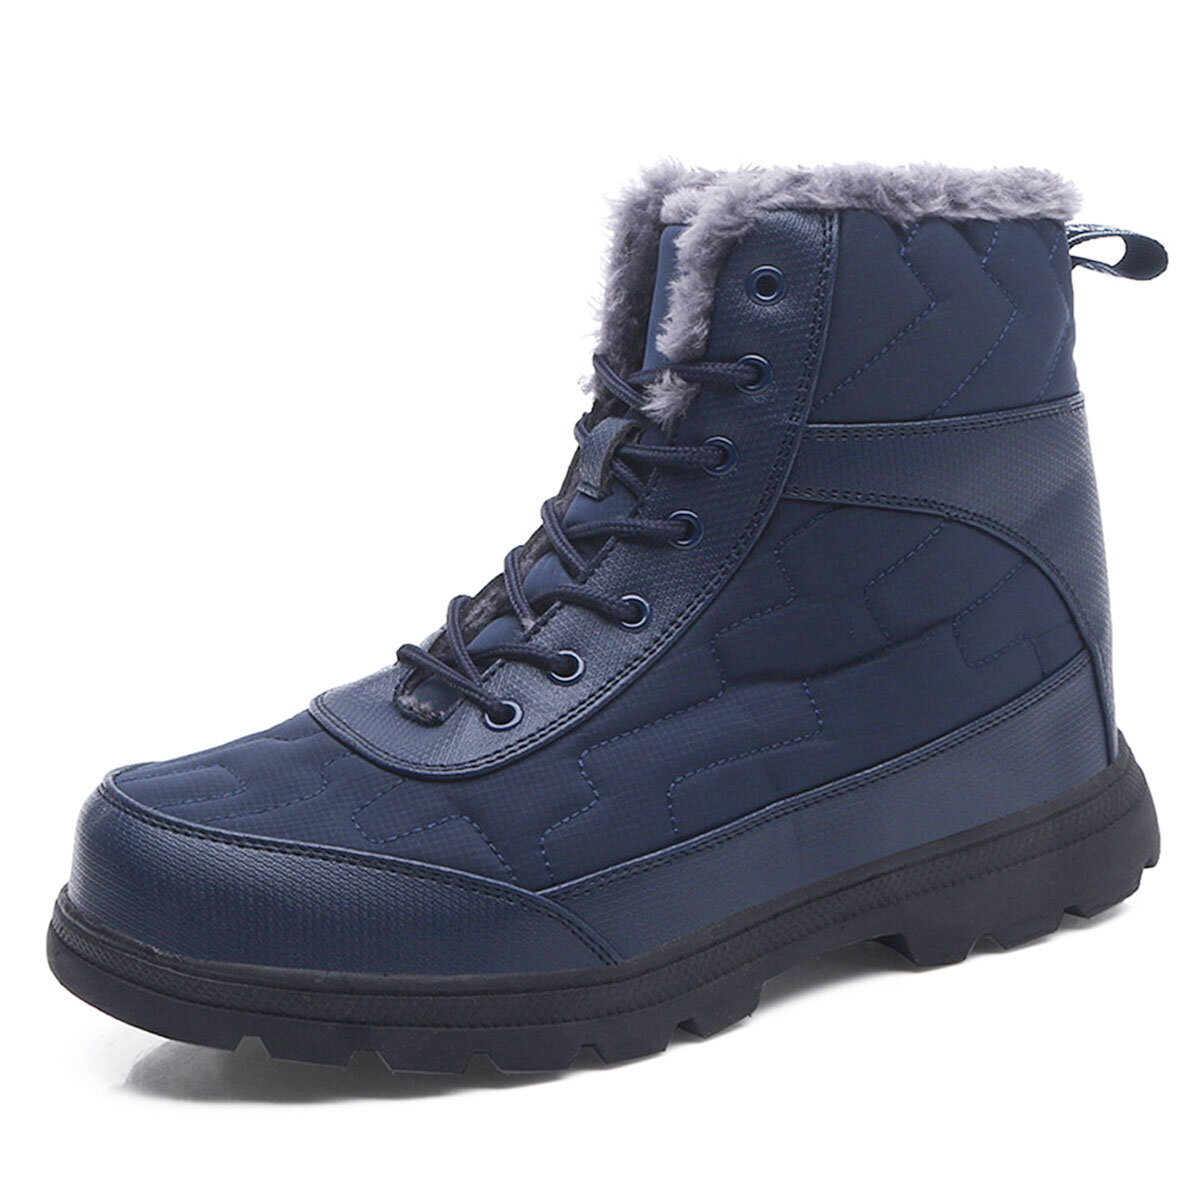 Men Comfy Warm Plush Lining Soft Sole Lace Up Casual Ankle Boots